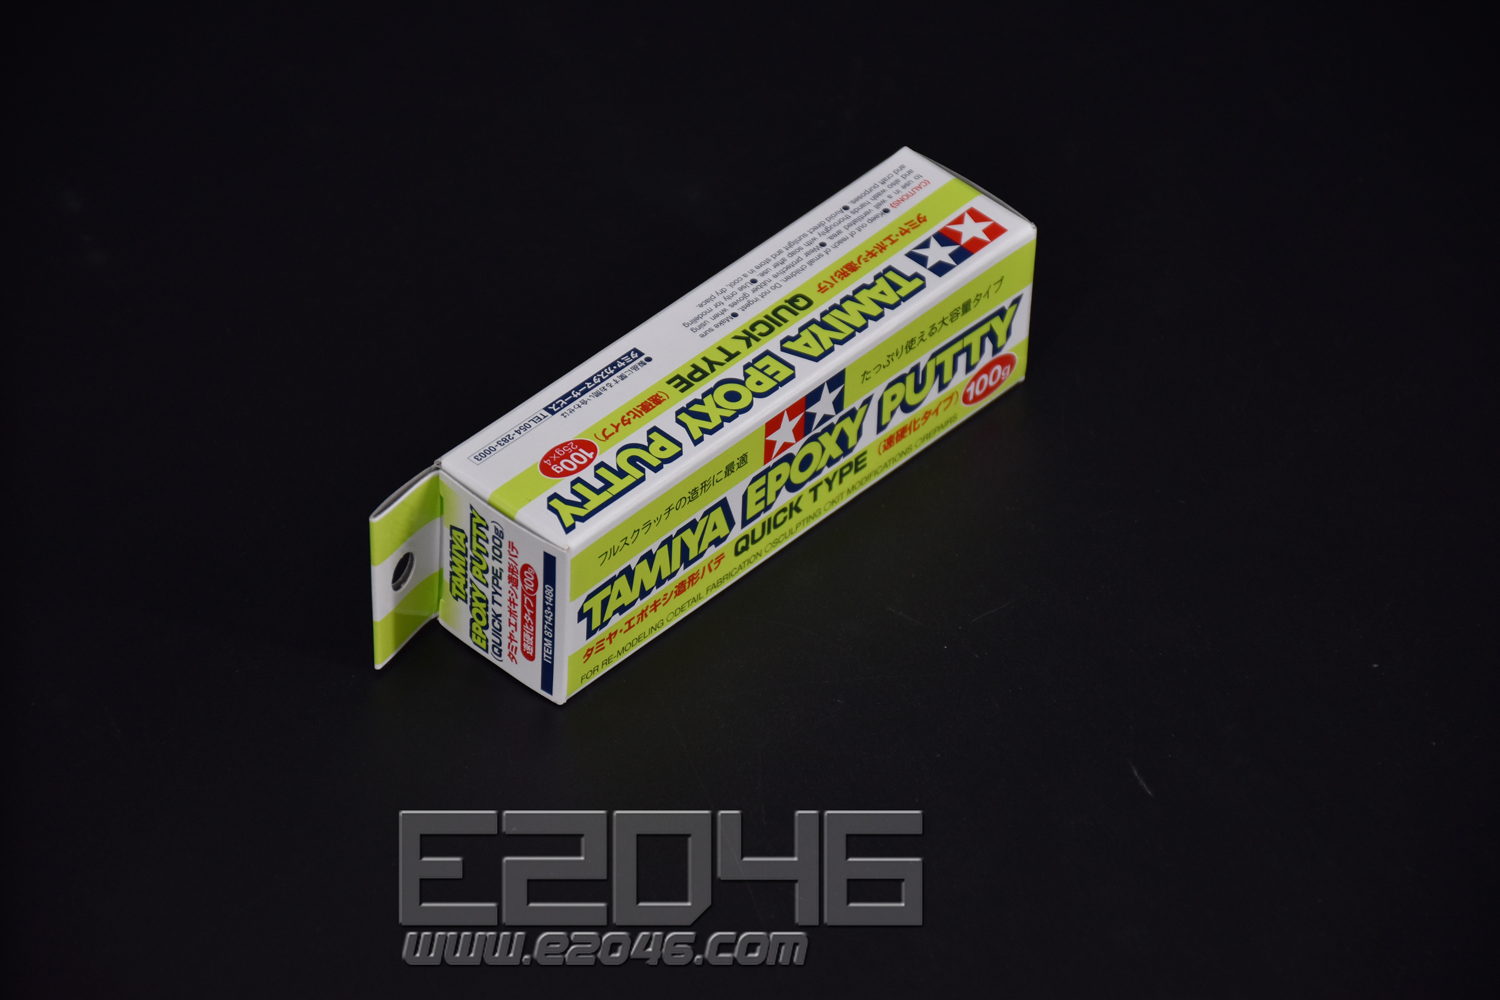 Tamiya Epoxy Putty 100g (Quick Type)